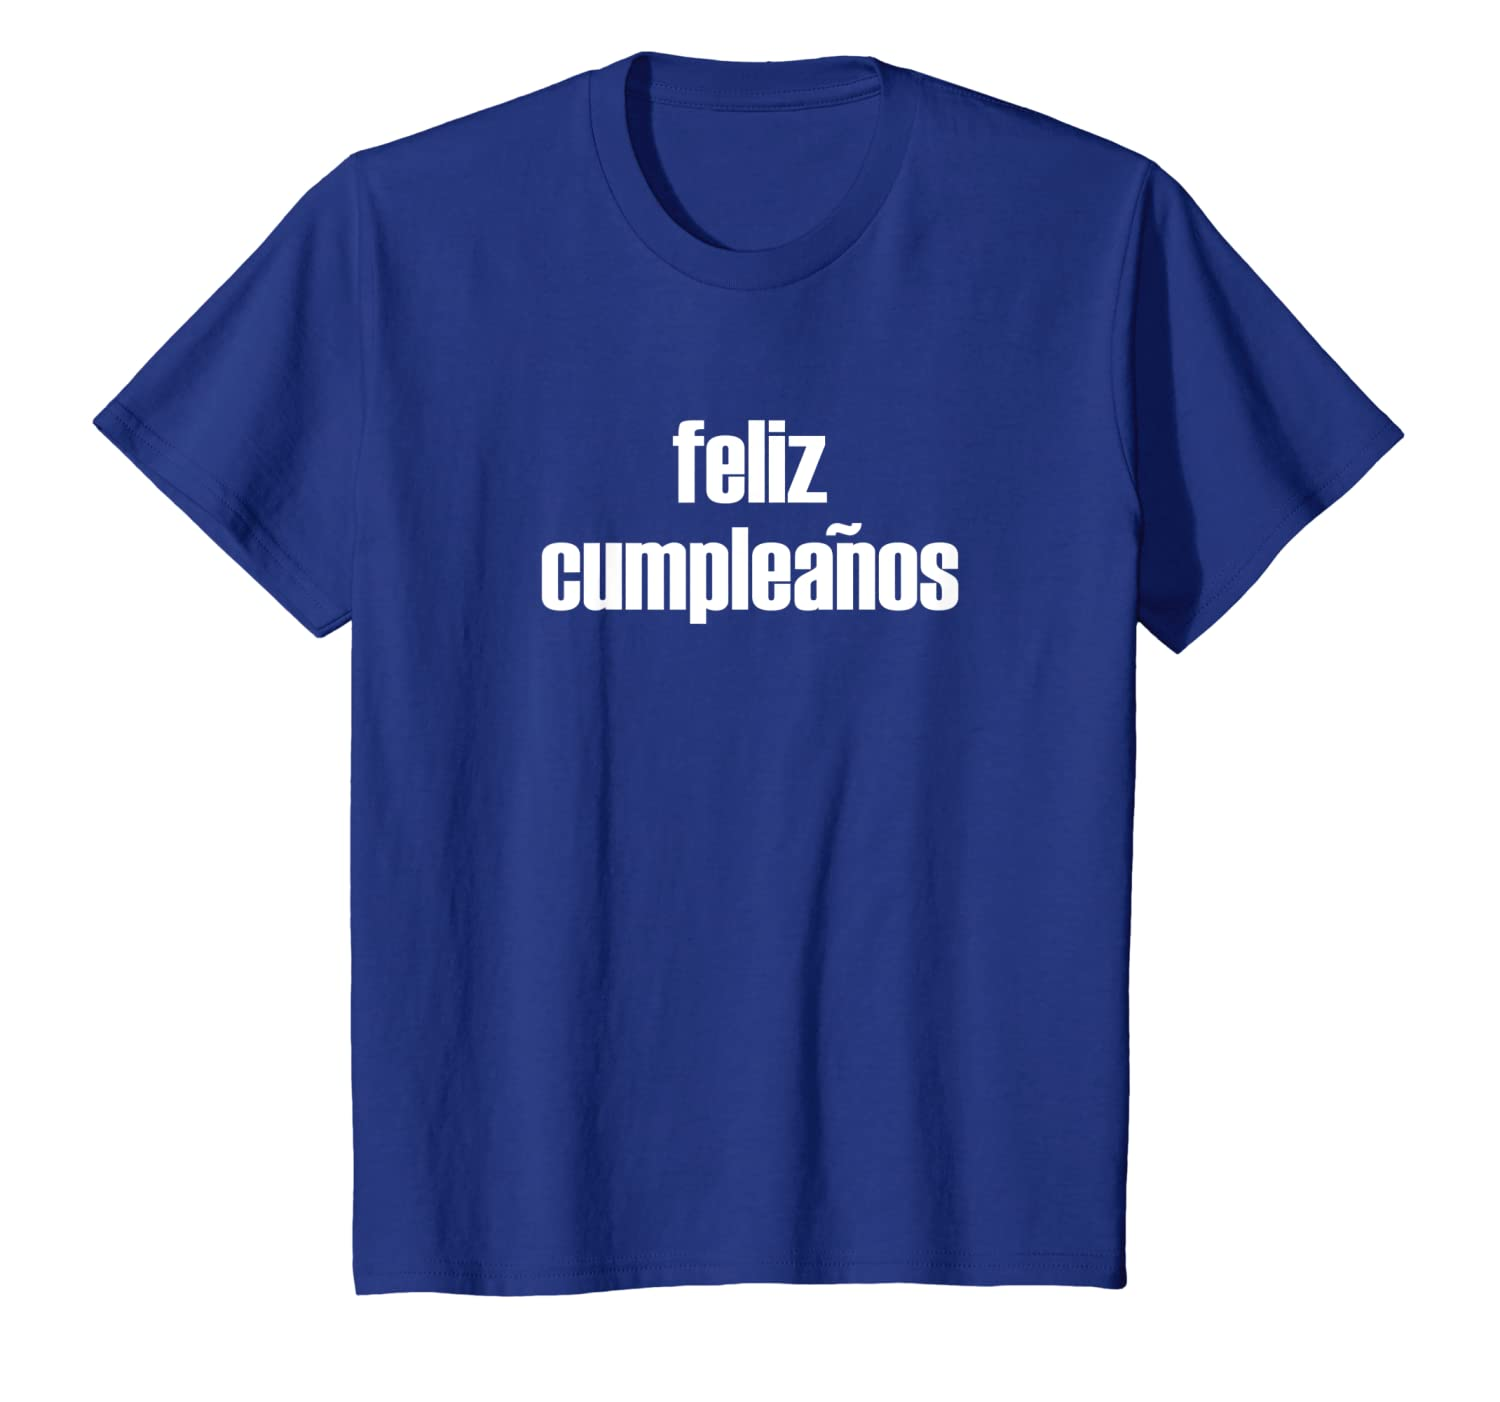 Amazon.com: Feliz Cumpleanos Tshirt Happy Birthday in ...